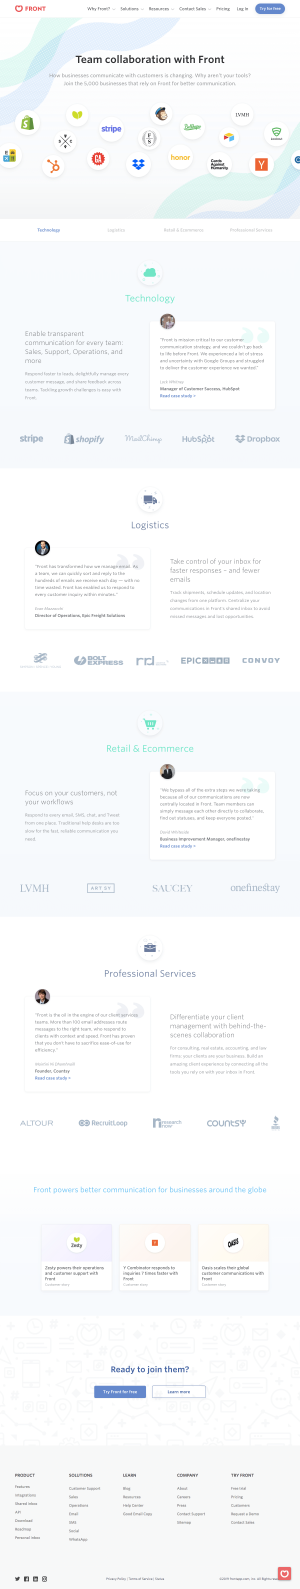 Front - Customers page